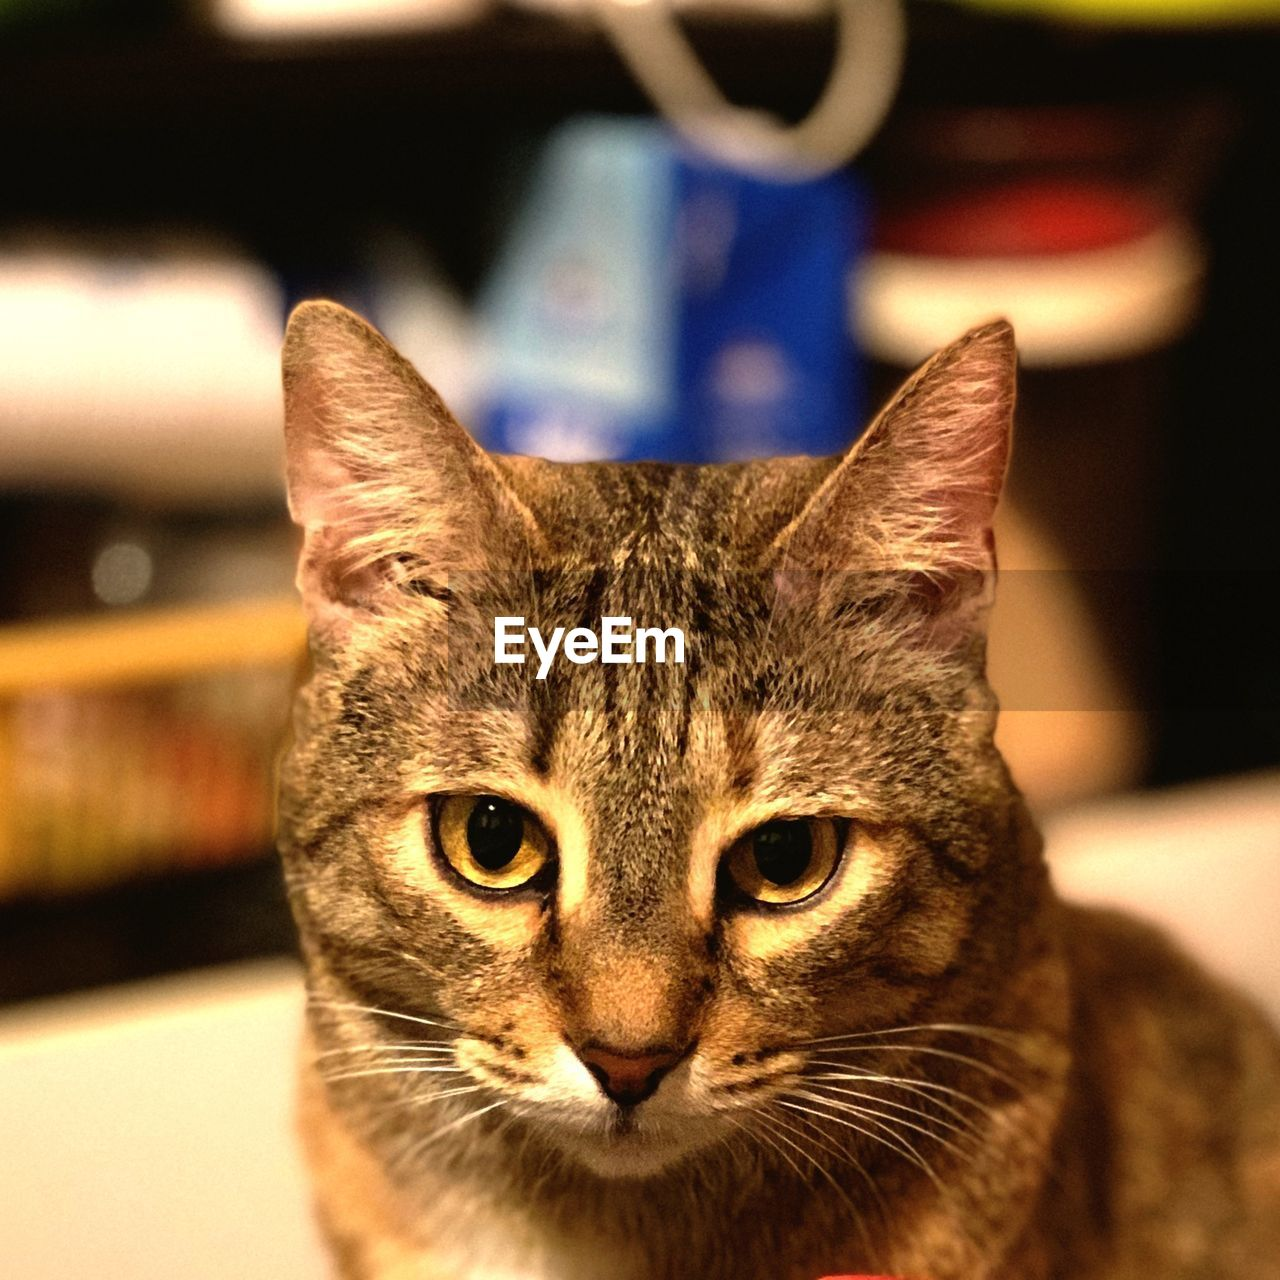 cat, domestic, domestic cat, pets, domestic animals, mammal, one animal, feline, looking at camera, portrait, vertebrate, focus on foreground, no people, close-up, whisker, indoors, animal body part, animal eye, tabby